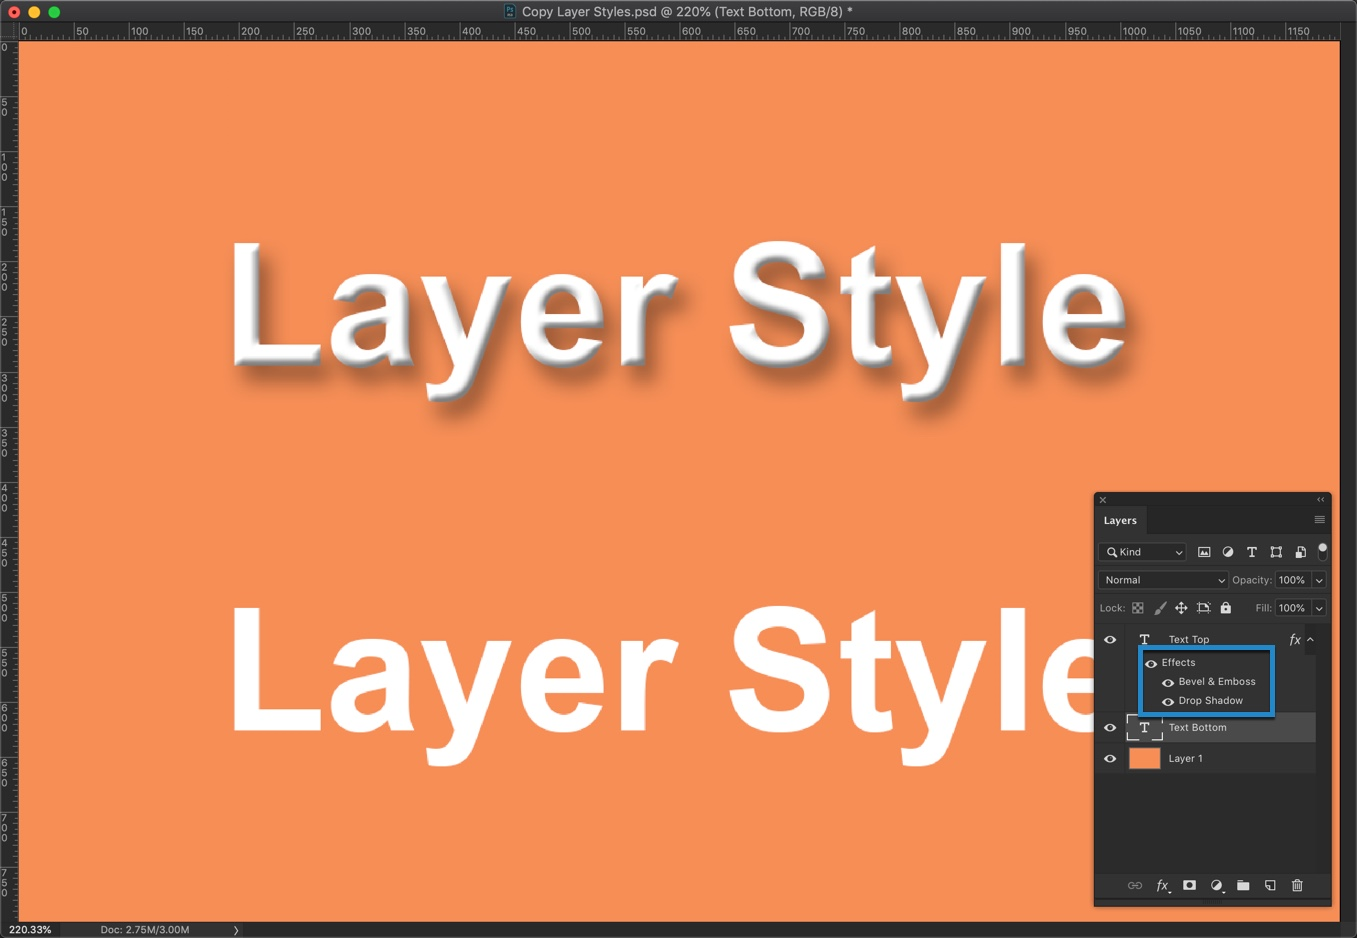 2-3 - Quick Tip: Copy Layer Styles in Photoshop